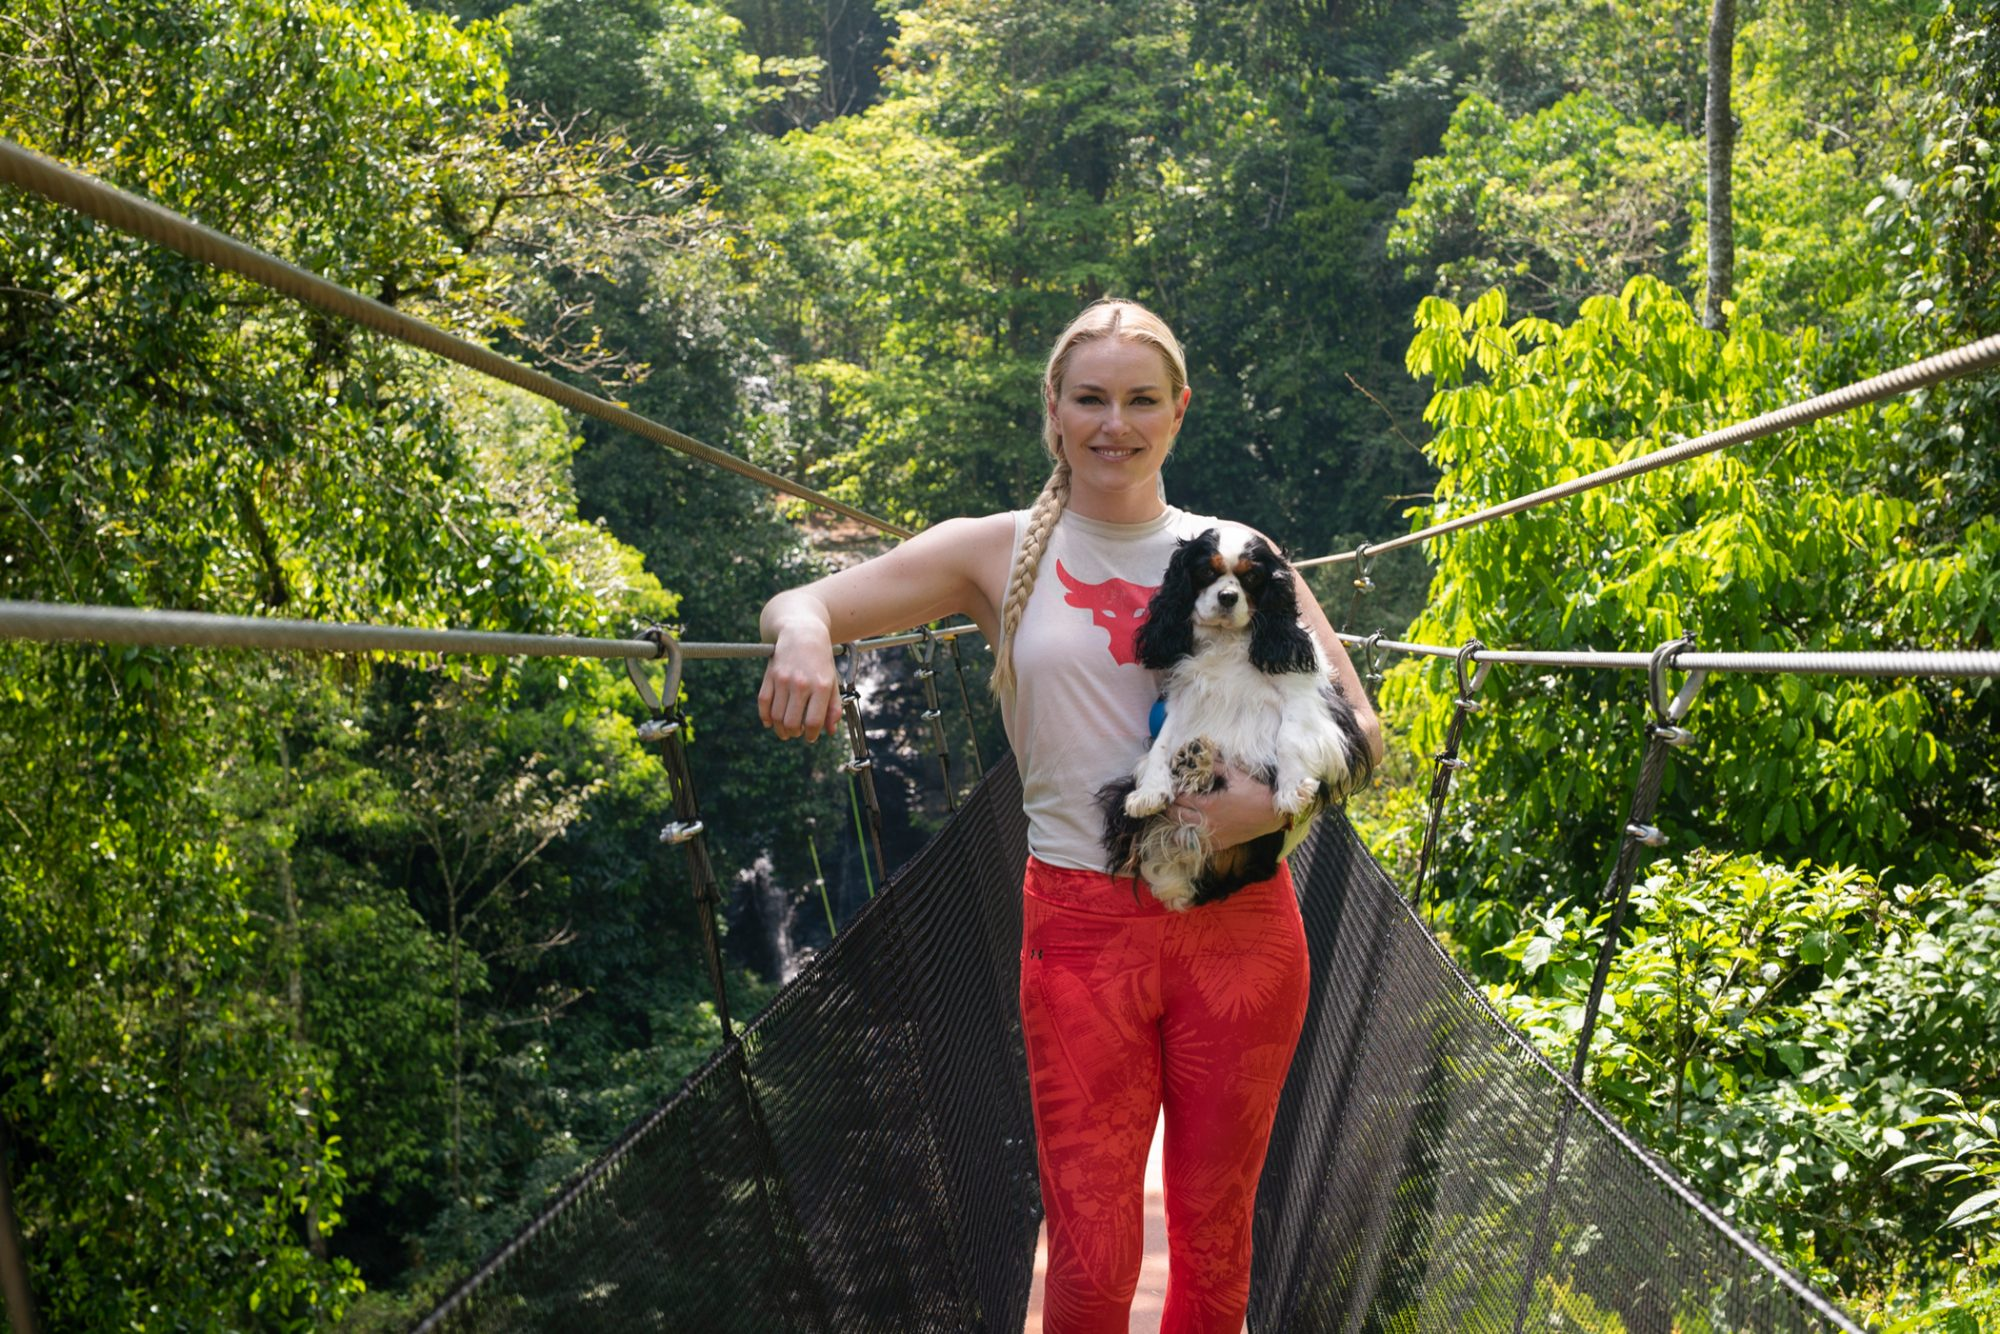 Olympian Lindsey Vonn holds spaniel puppy while standing on bridge